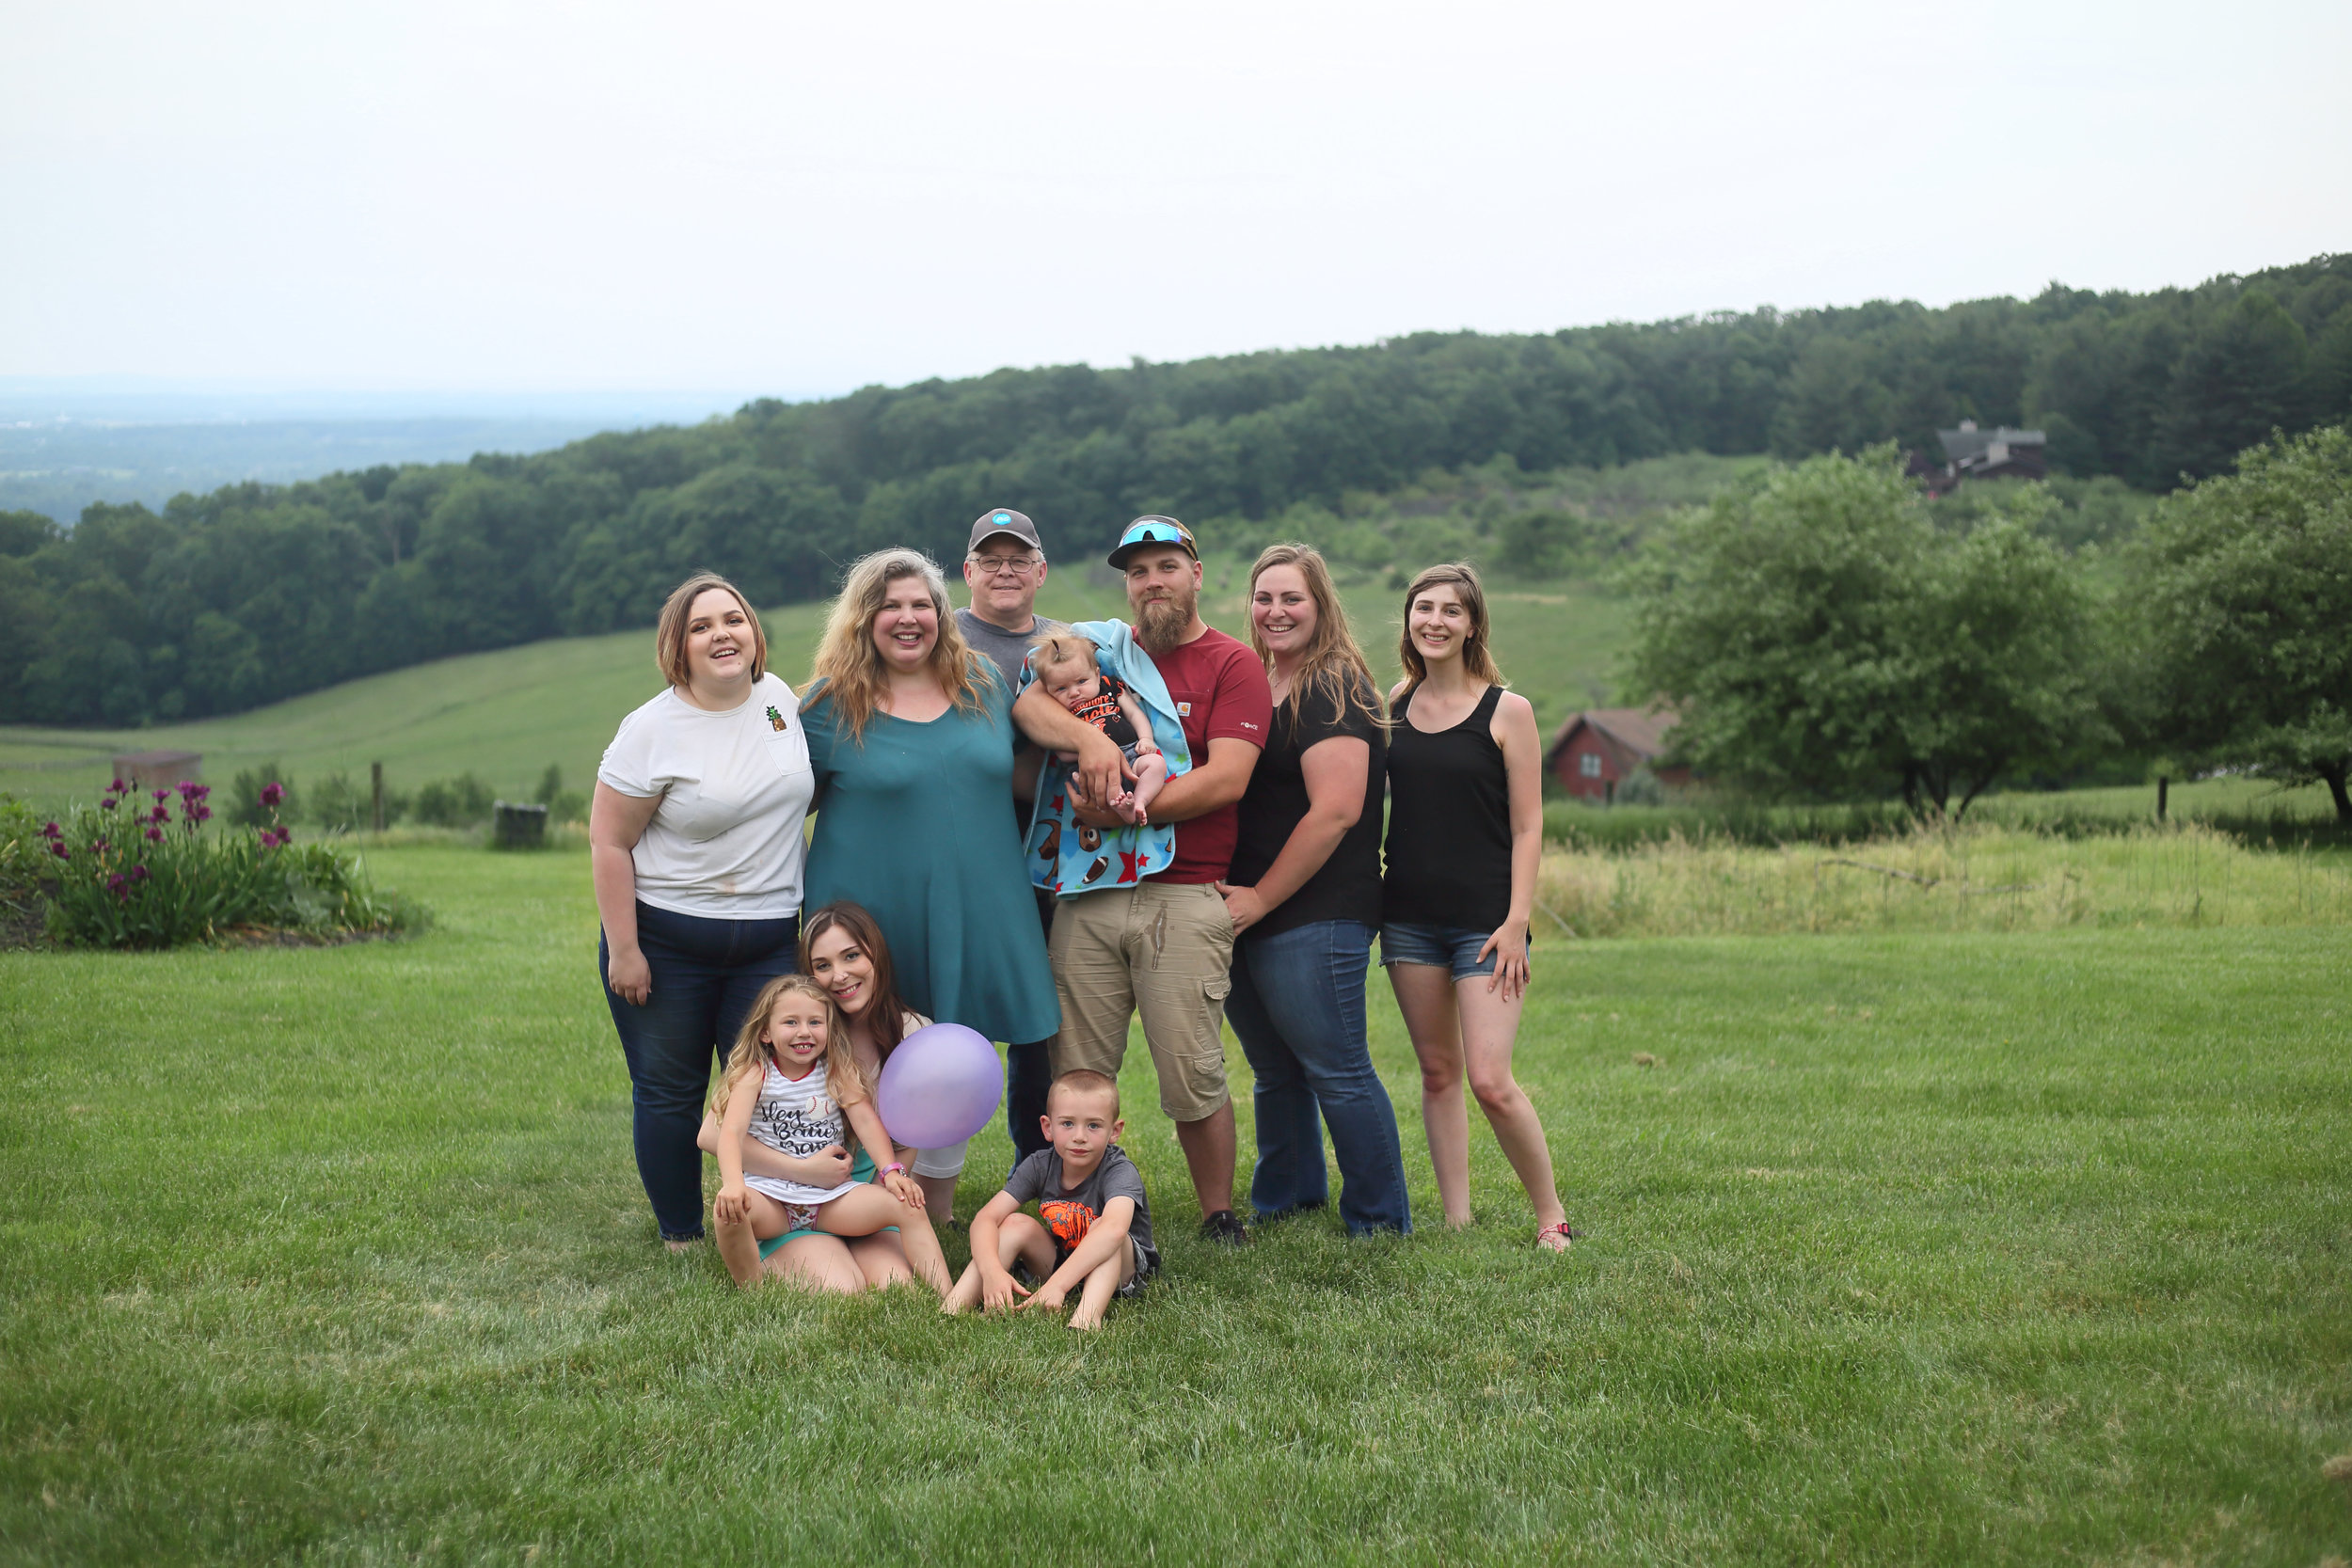 We were so fortunate to have permission to use Tyler's Aunt's property to take advantage of this incredible view of Thurmont. First full family photo since the new addition. Minutes before we took this, Raegan found some relief and milk-puked all over Noah (note the strategic placement of the baby blanket).